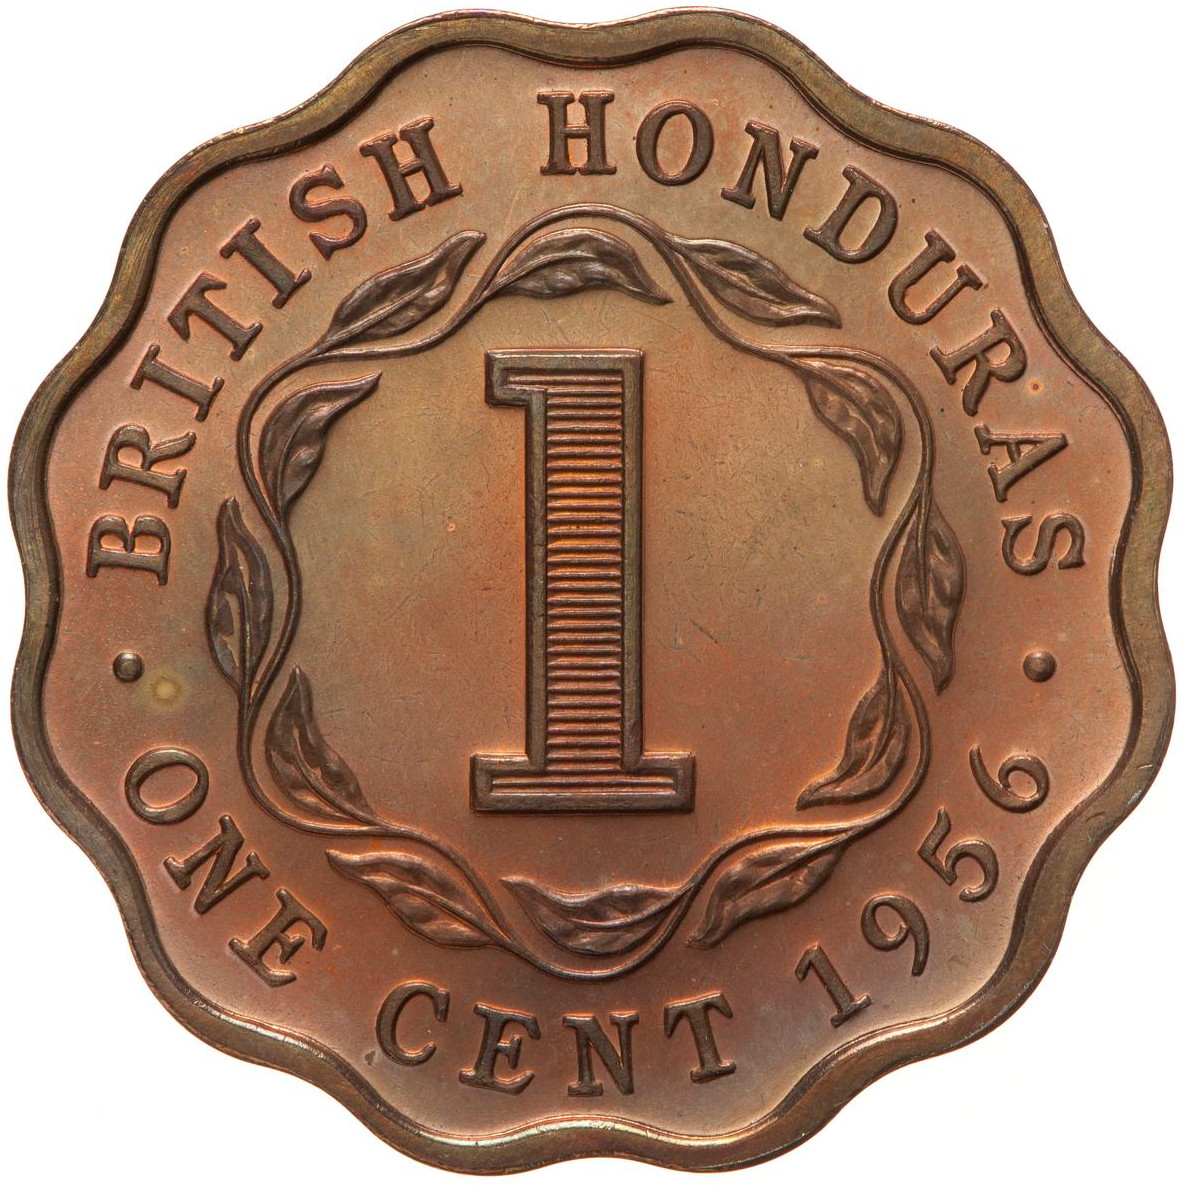 One Cent Coin Type From British Honduras Showing Photos Online Coin Club